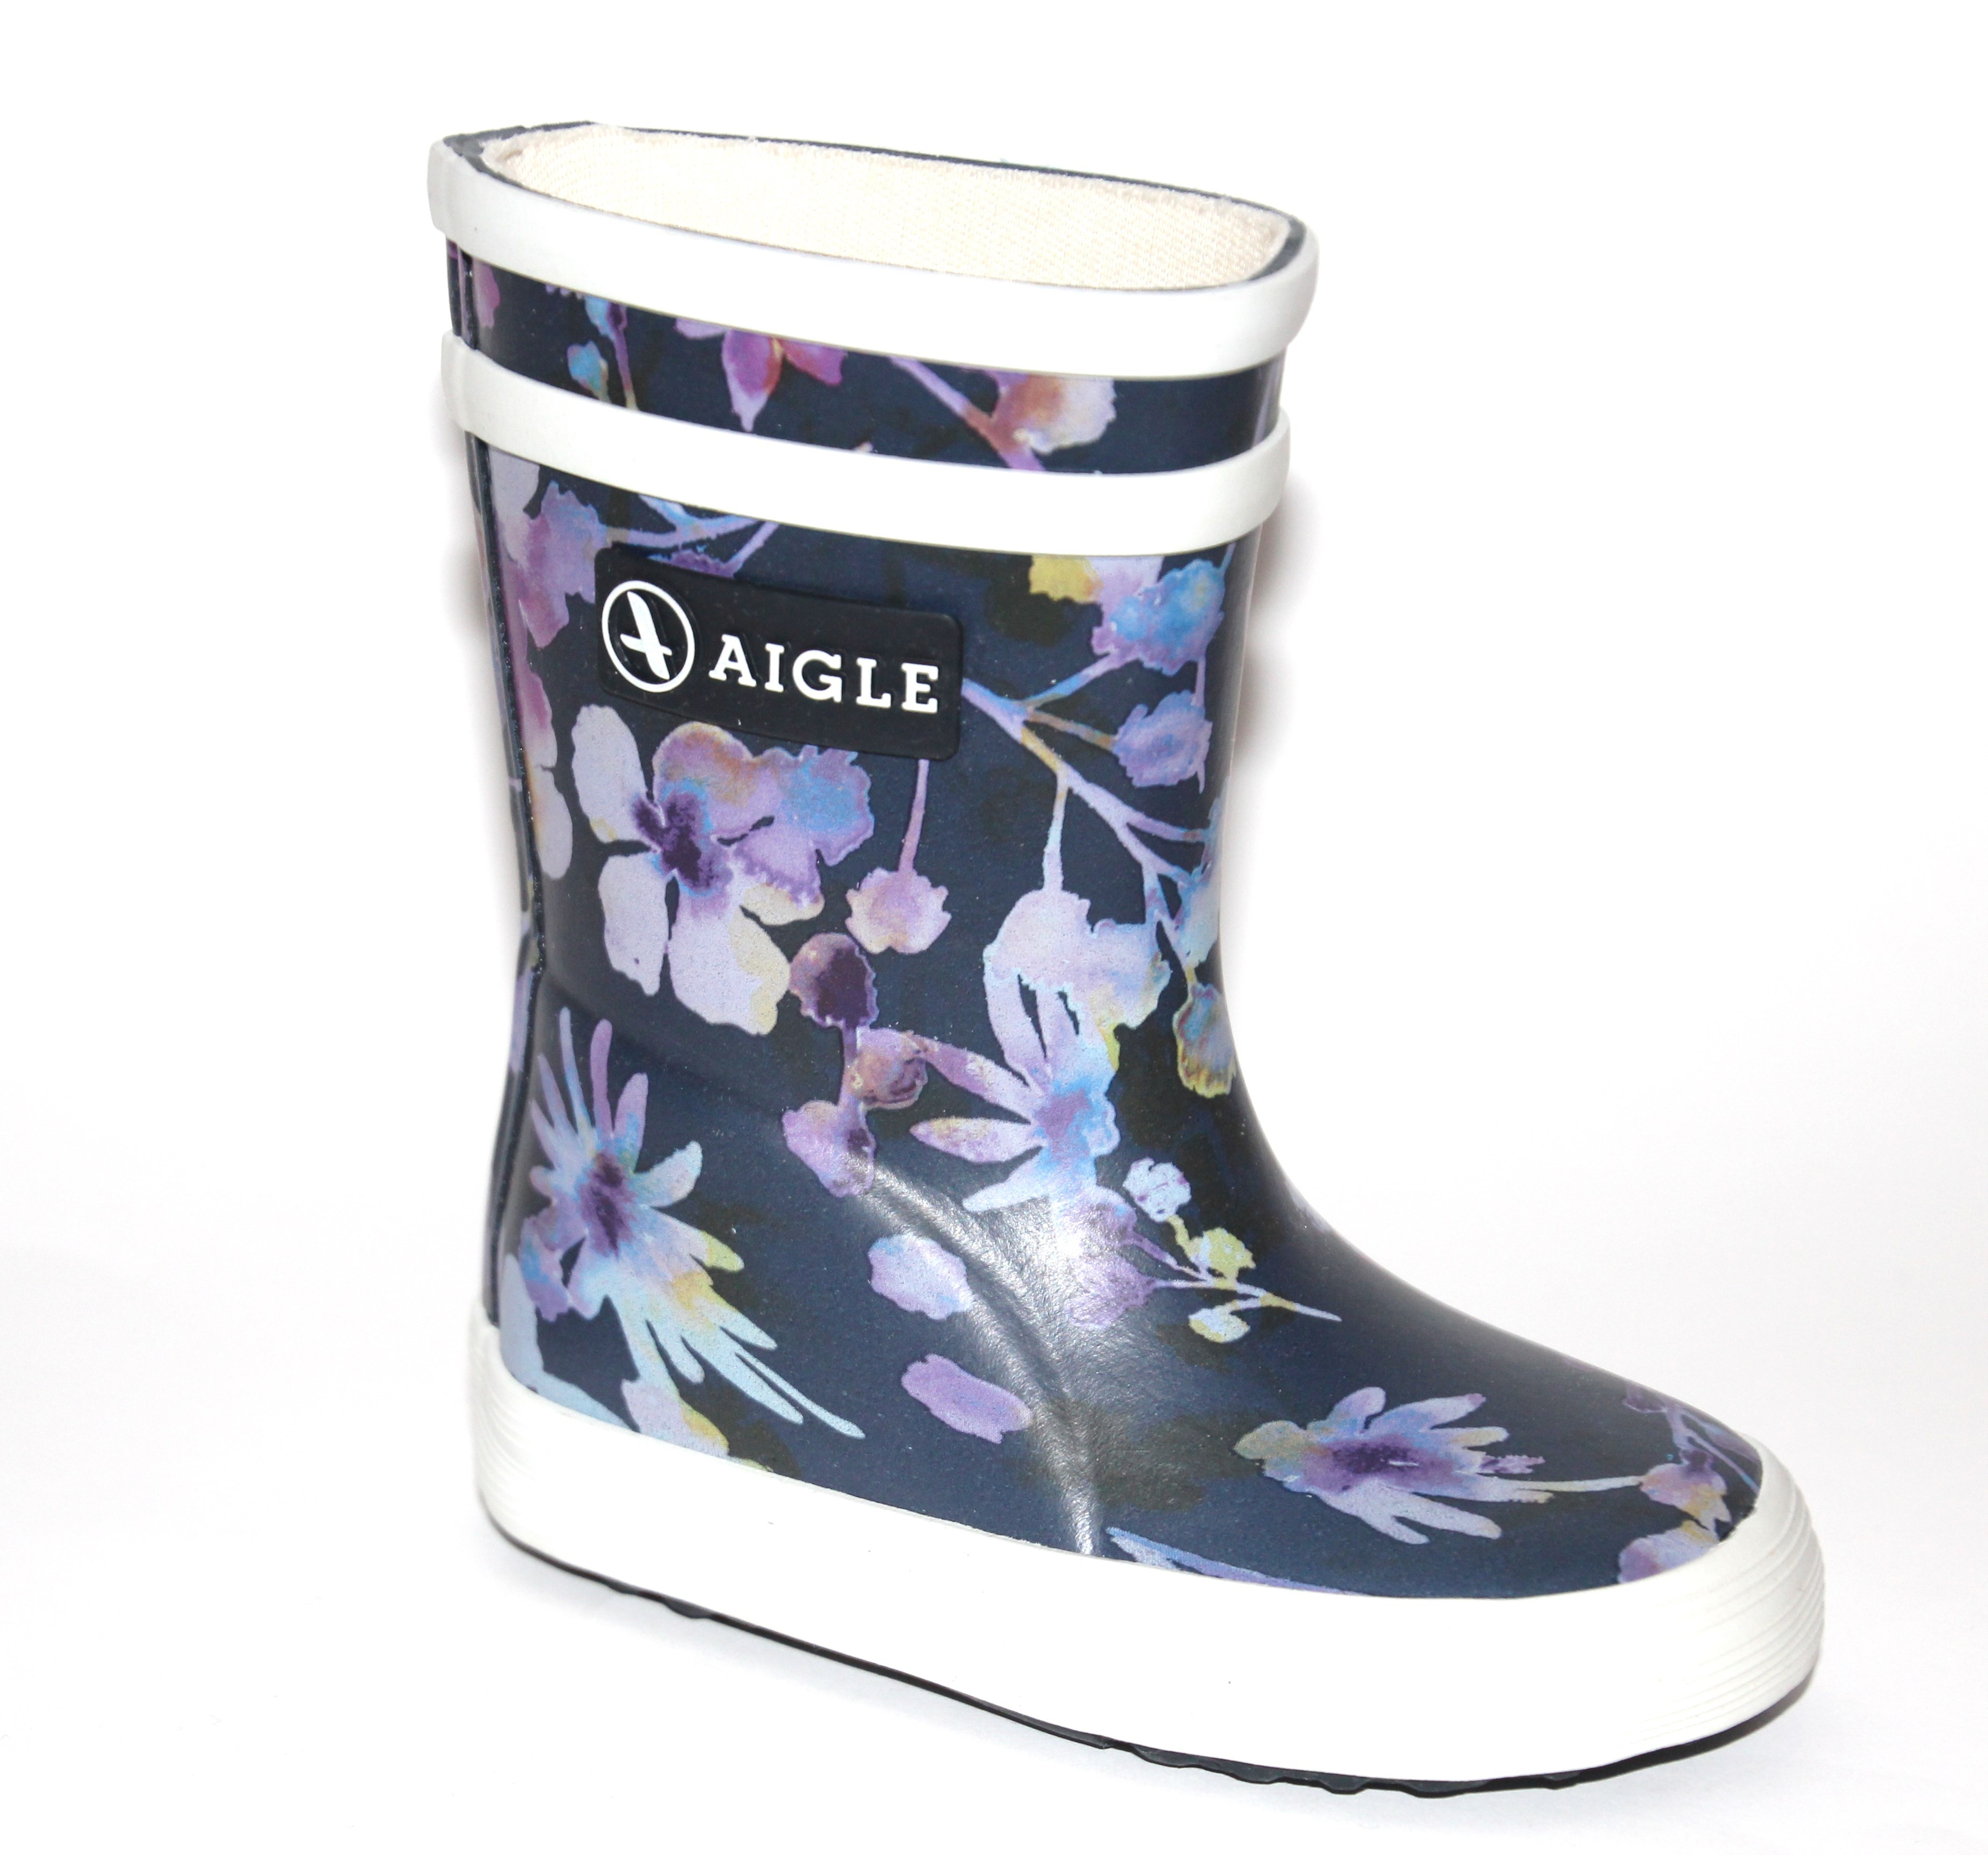 AIGLE Baby Flag Dark Flower